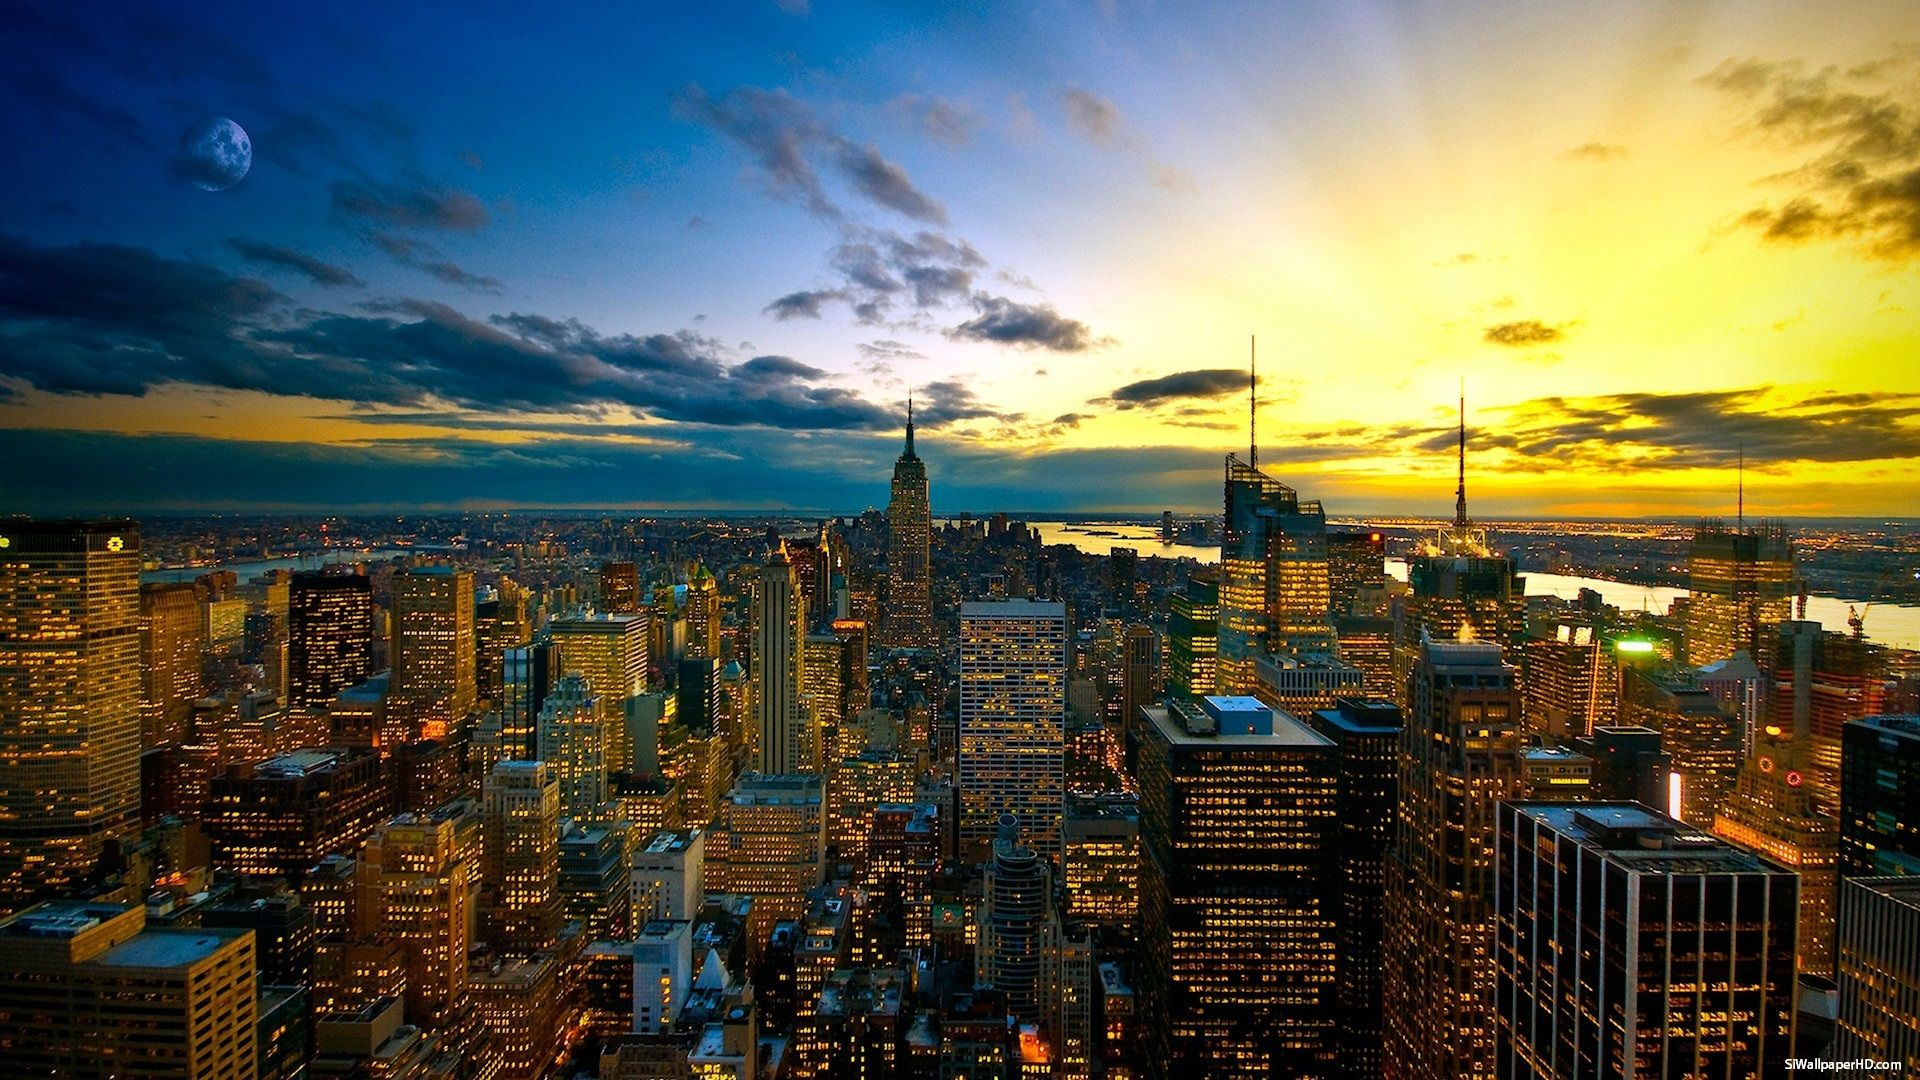 NY City Skyline Wallpaper 1920x1080 New York 45 Wallpapers